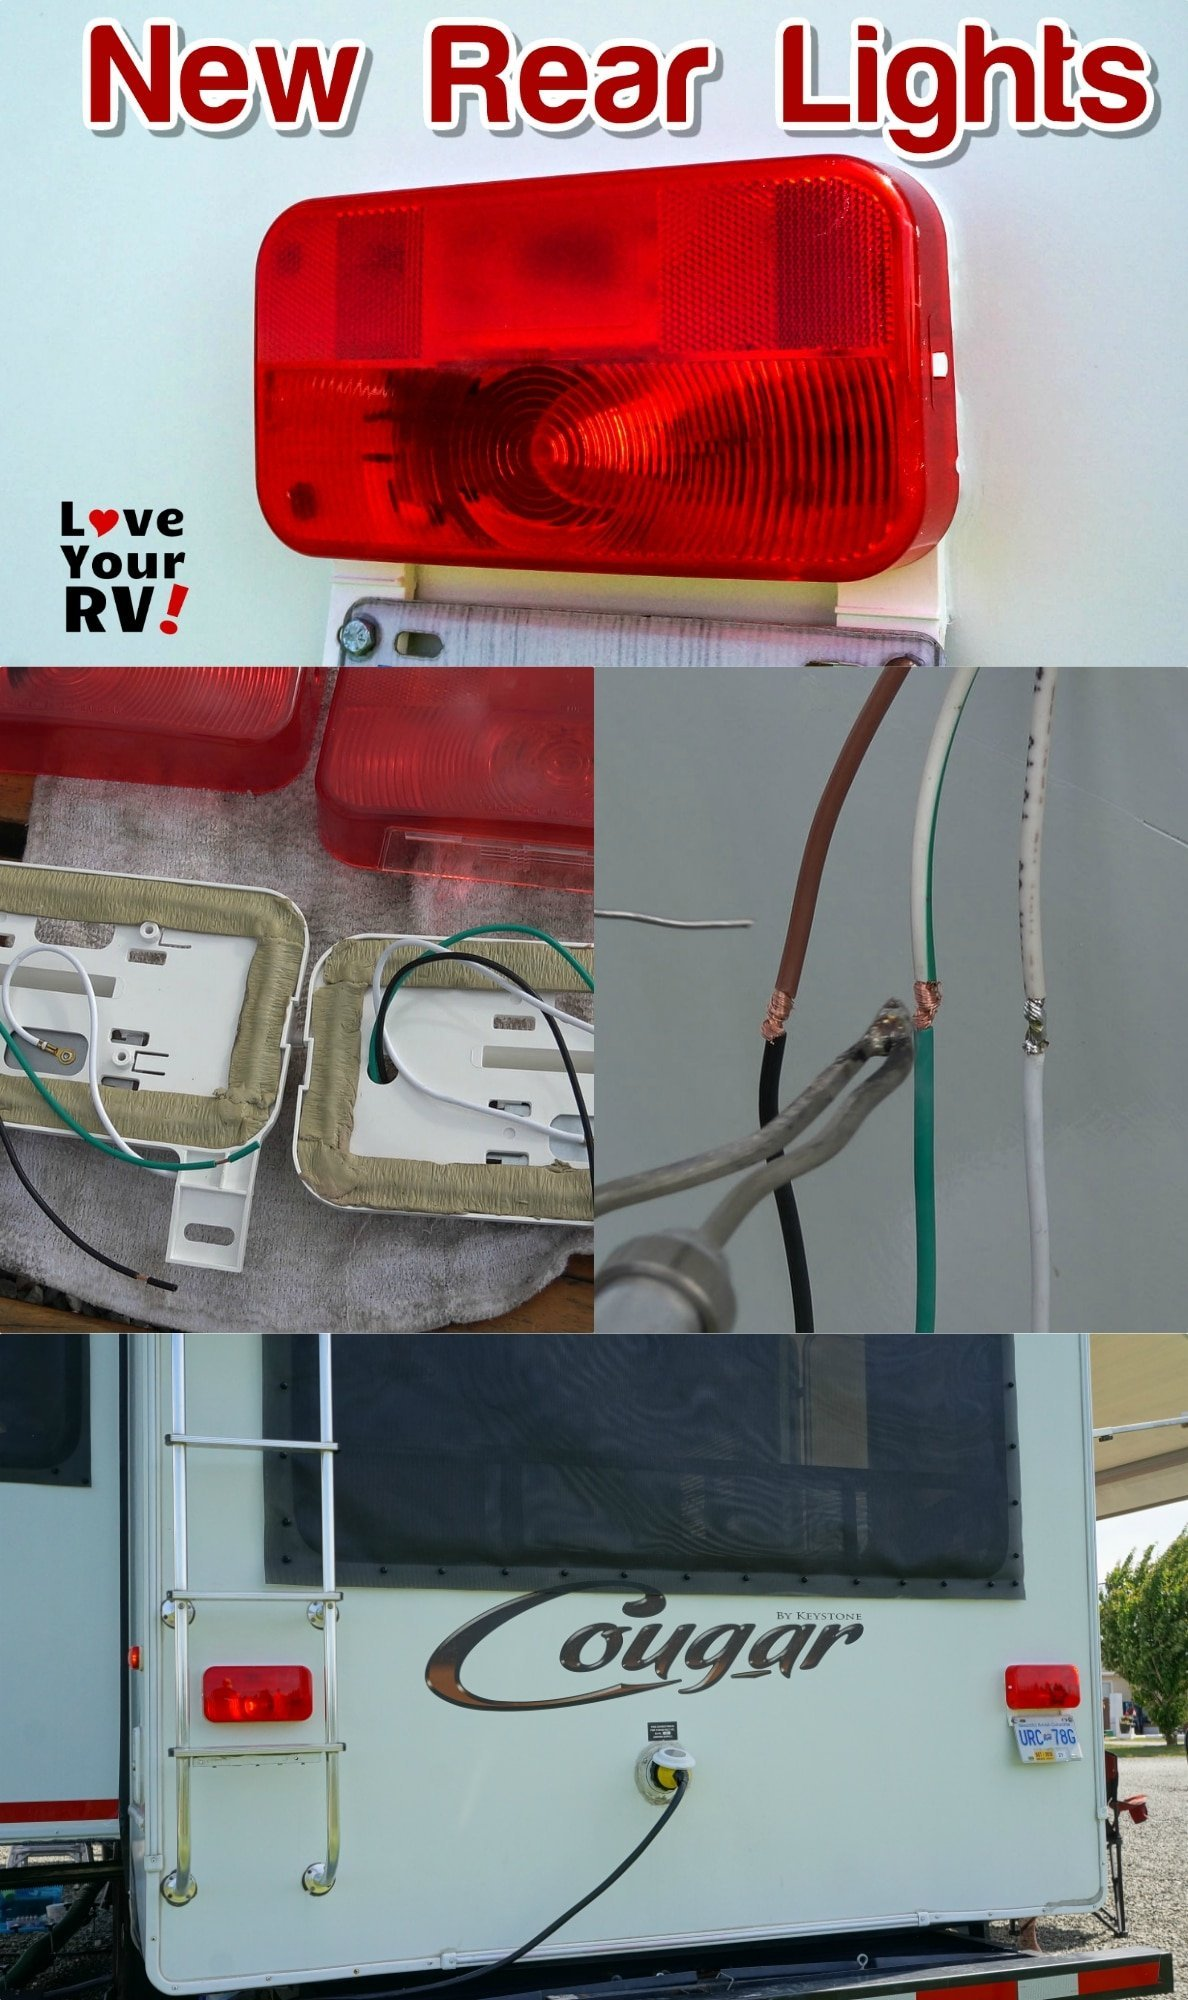 Replacing the rear signal and brake lights on my 2011 Keystone Cougar fifth wheel trailer Love Your RV blog - https://www.loveyourrv.com